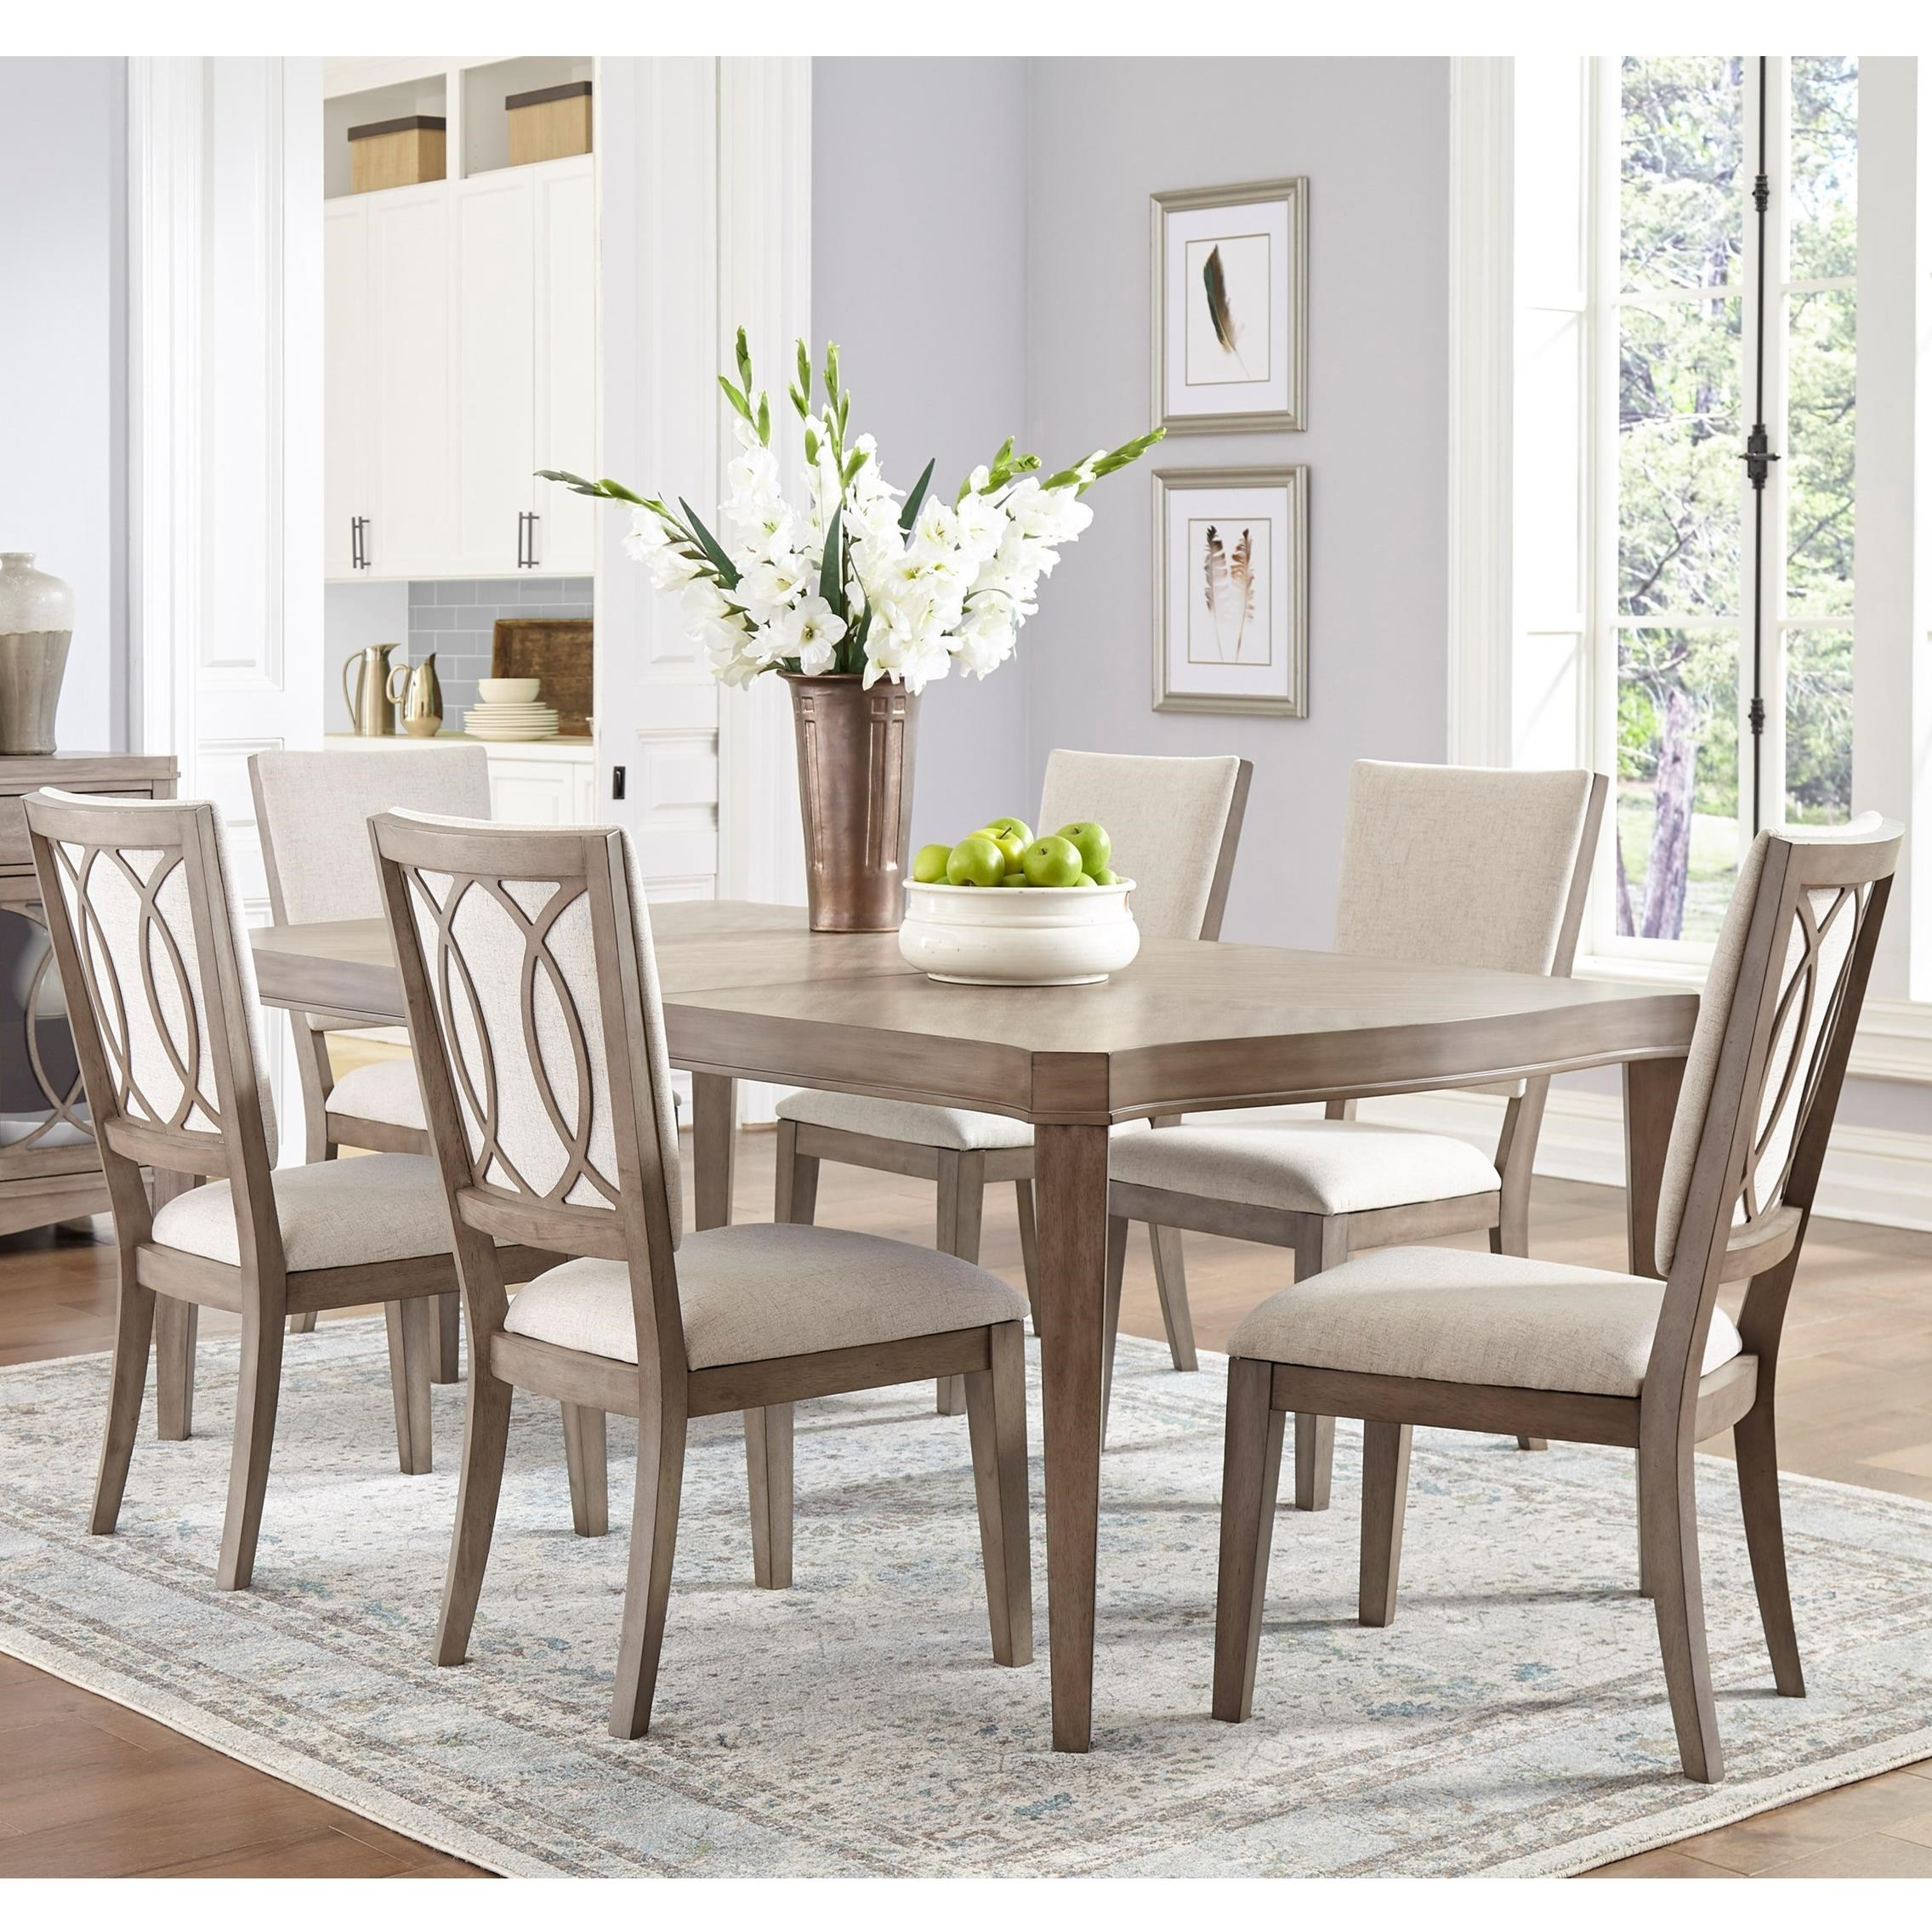 Great Furniture Stores: Standard Furniture Venue 7-Piece Dining Set With